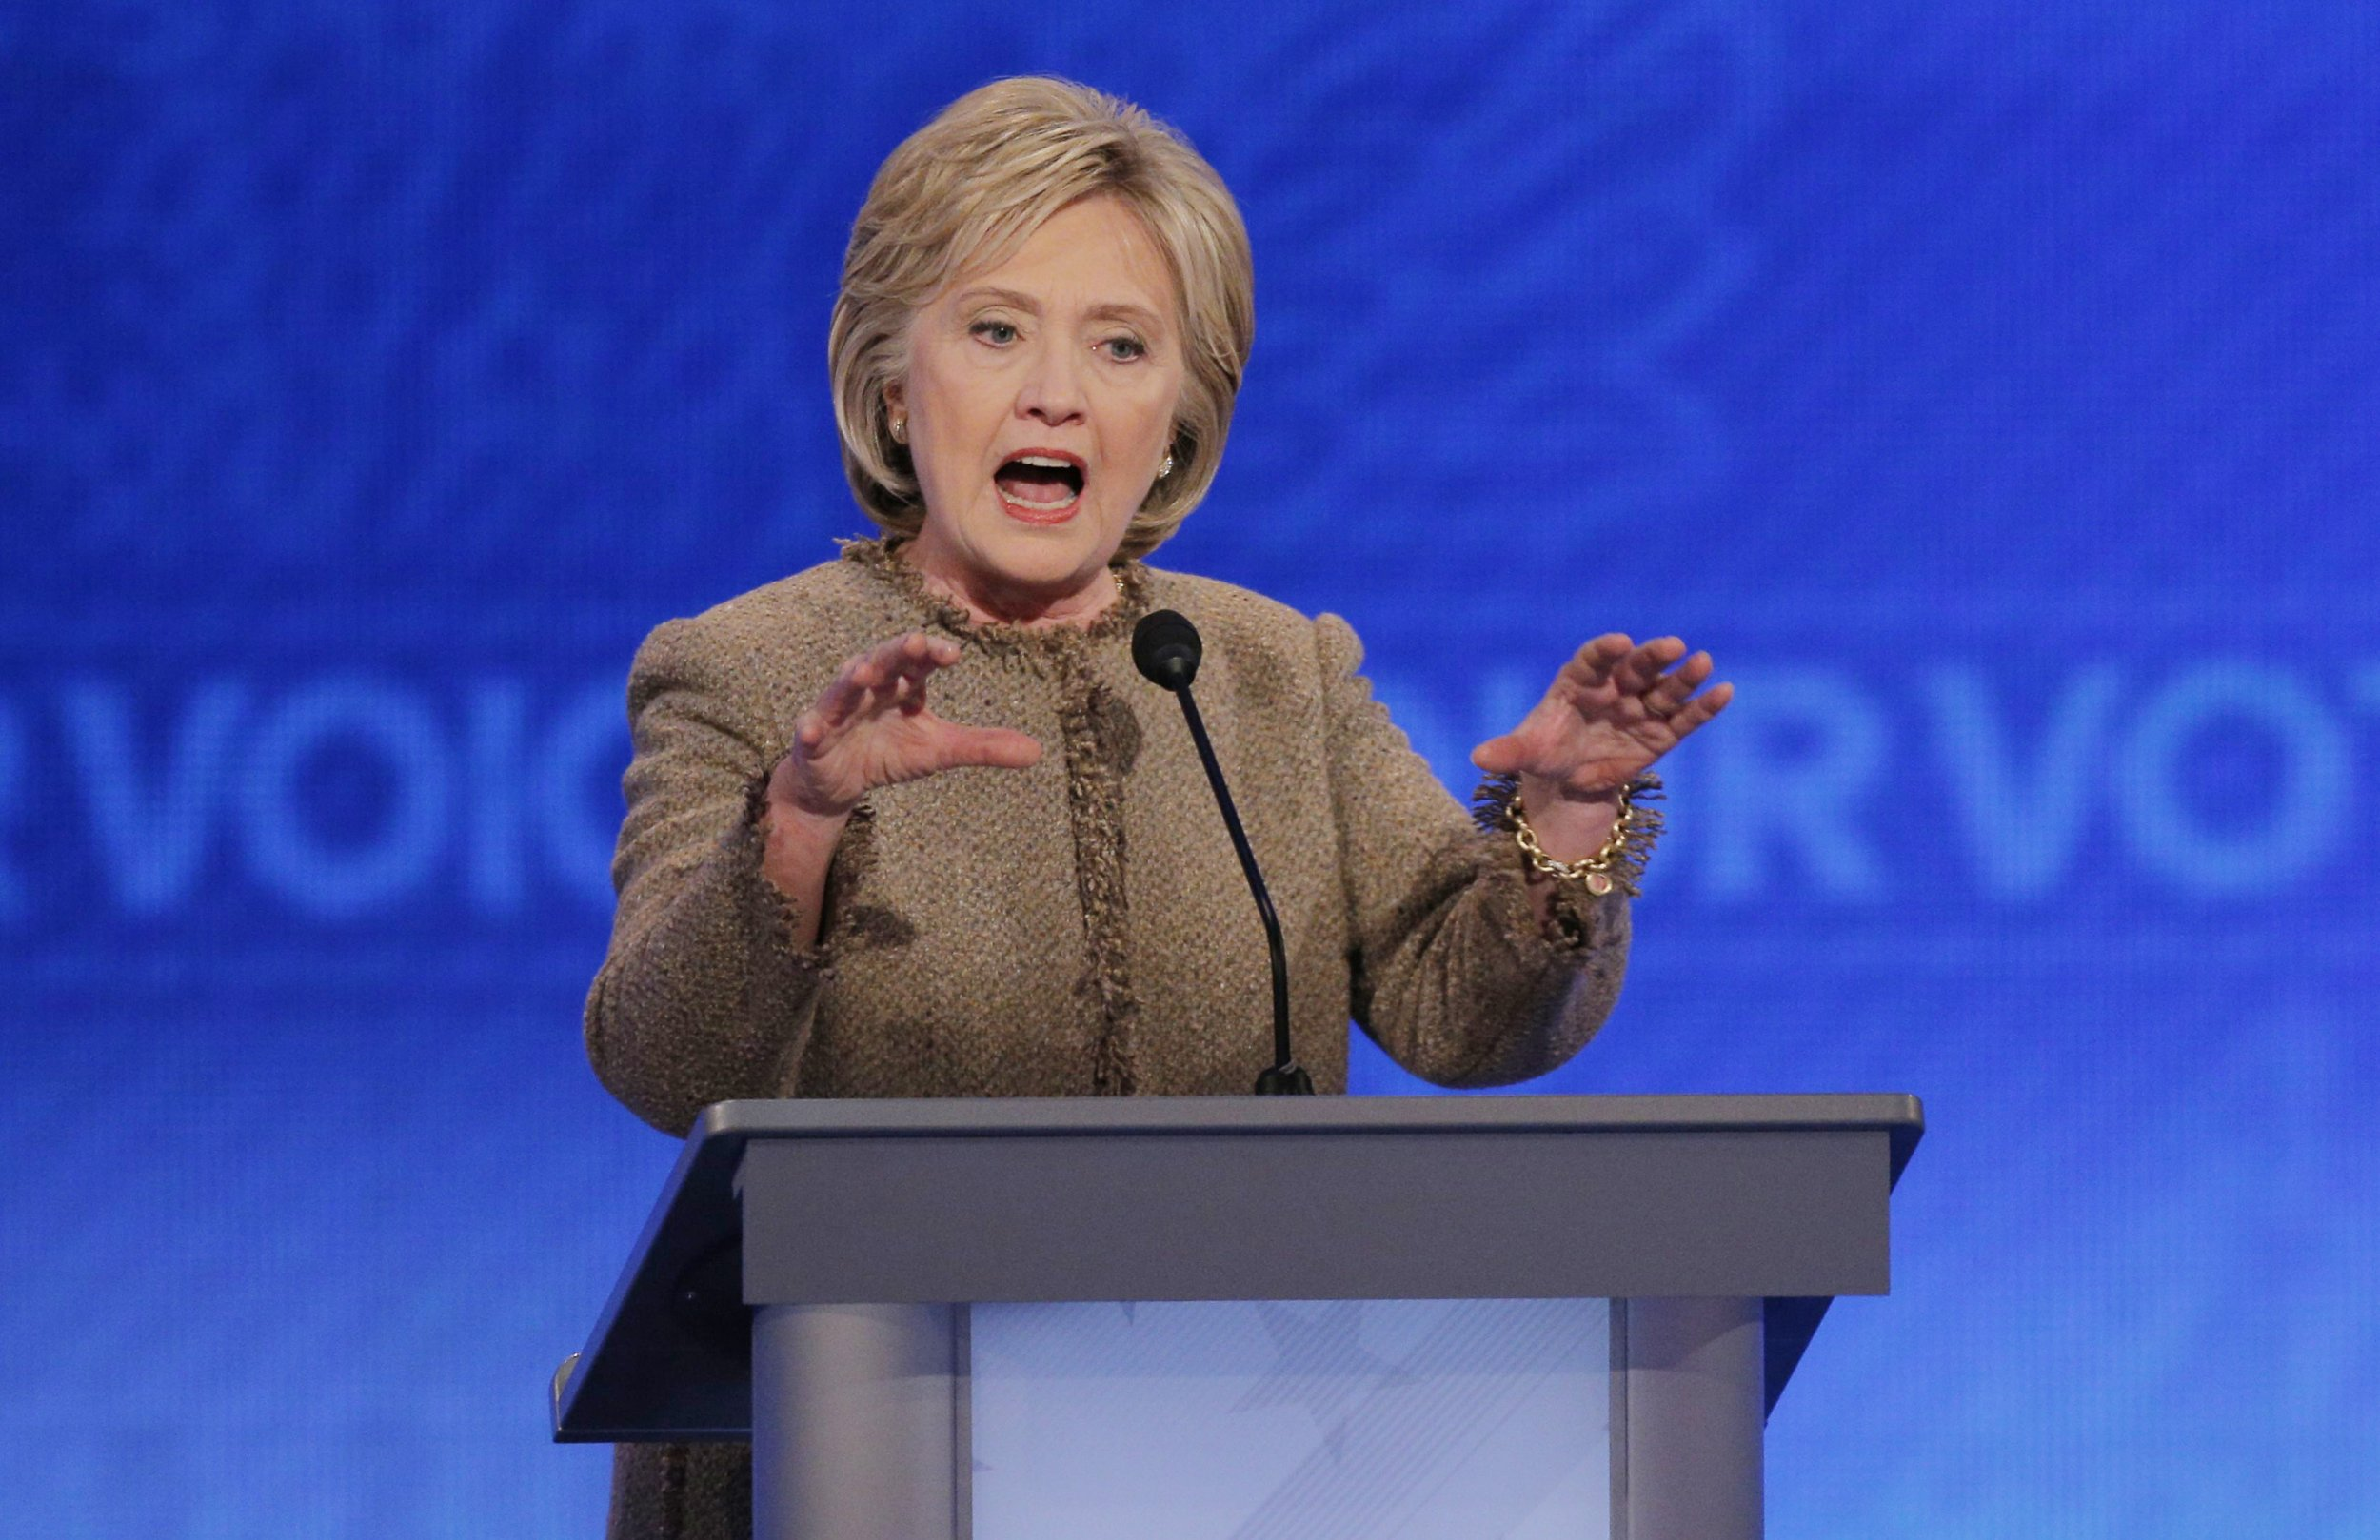 Clinton's plan to cure Alzheimer's by 2025